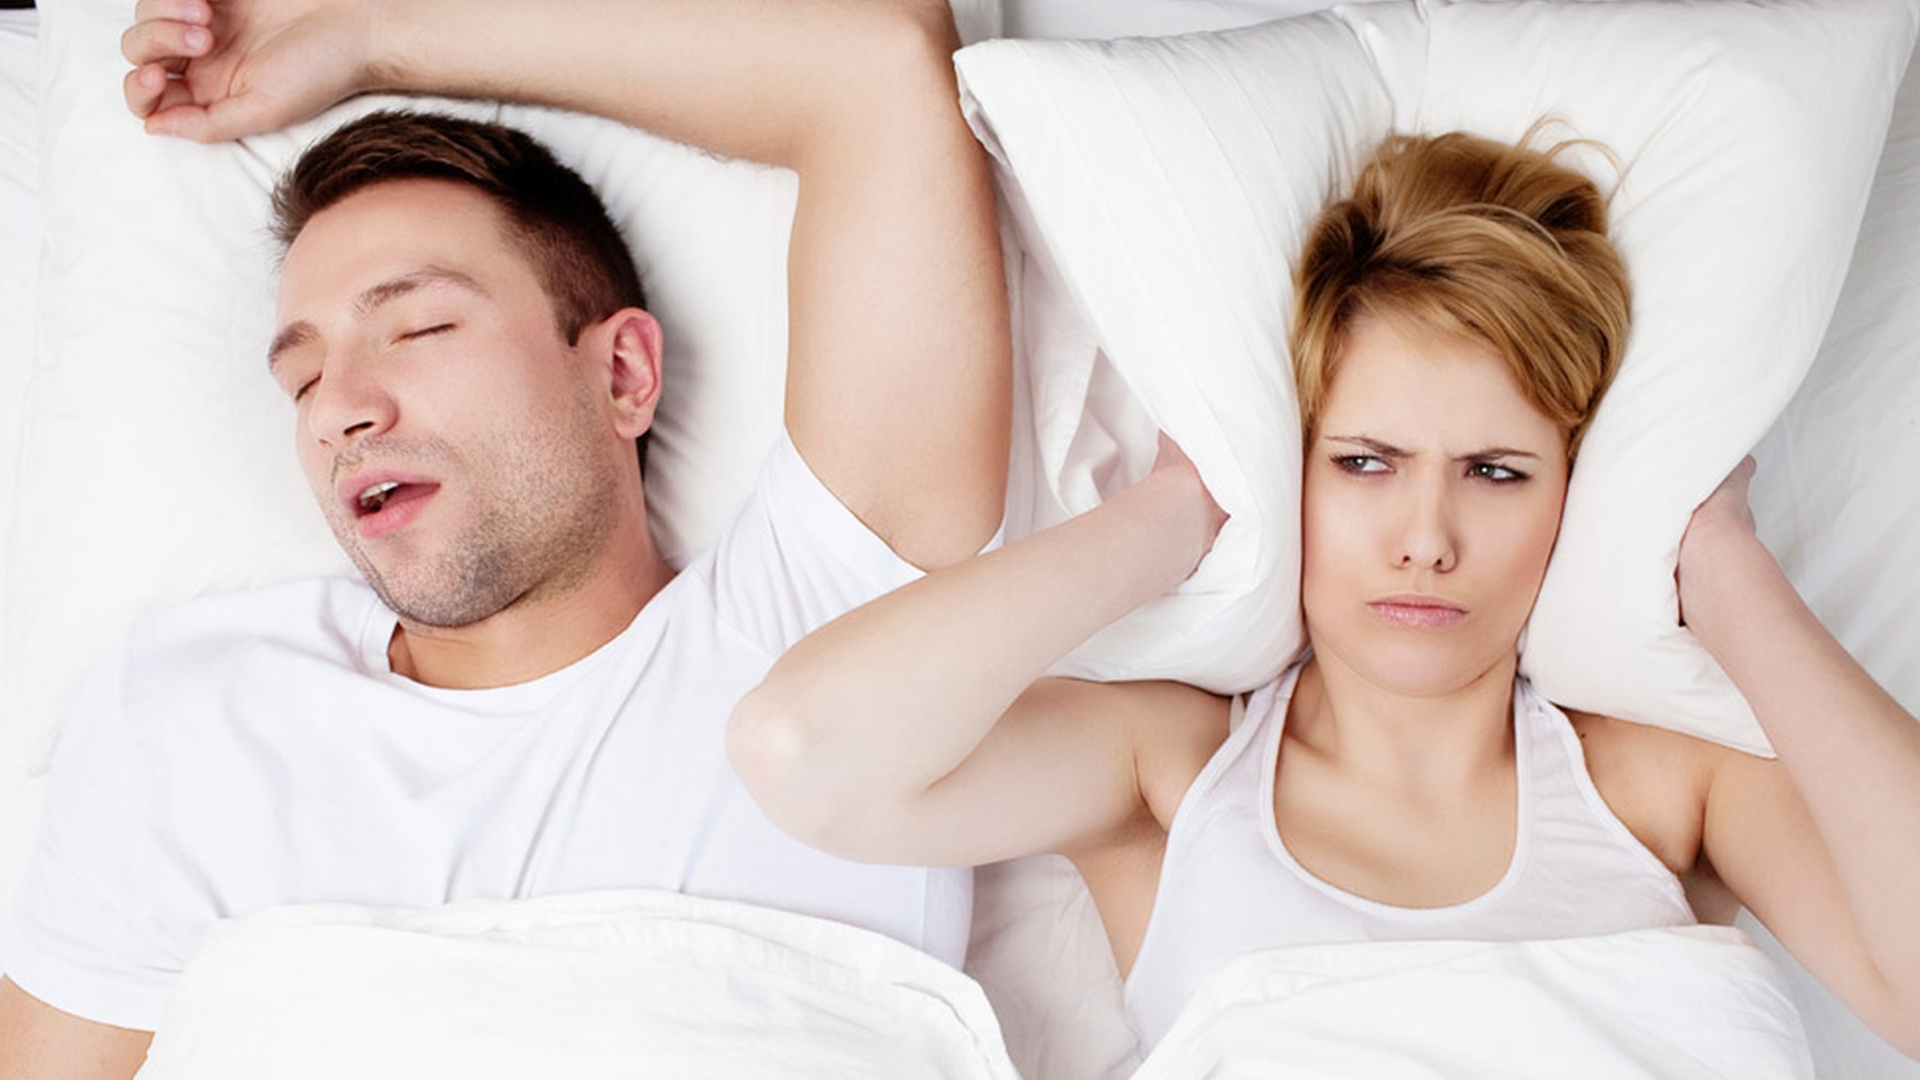 what-health-problems-can-trigger-sleep-apnea-and-snoring